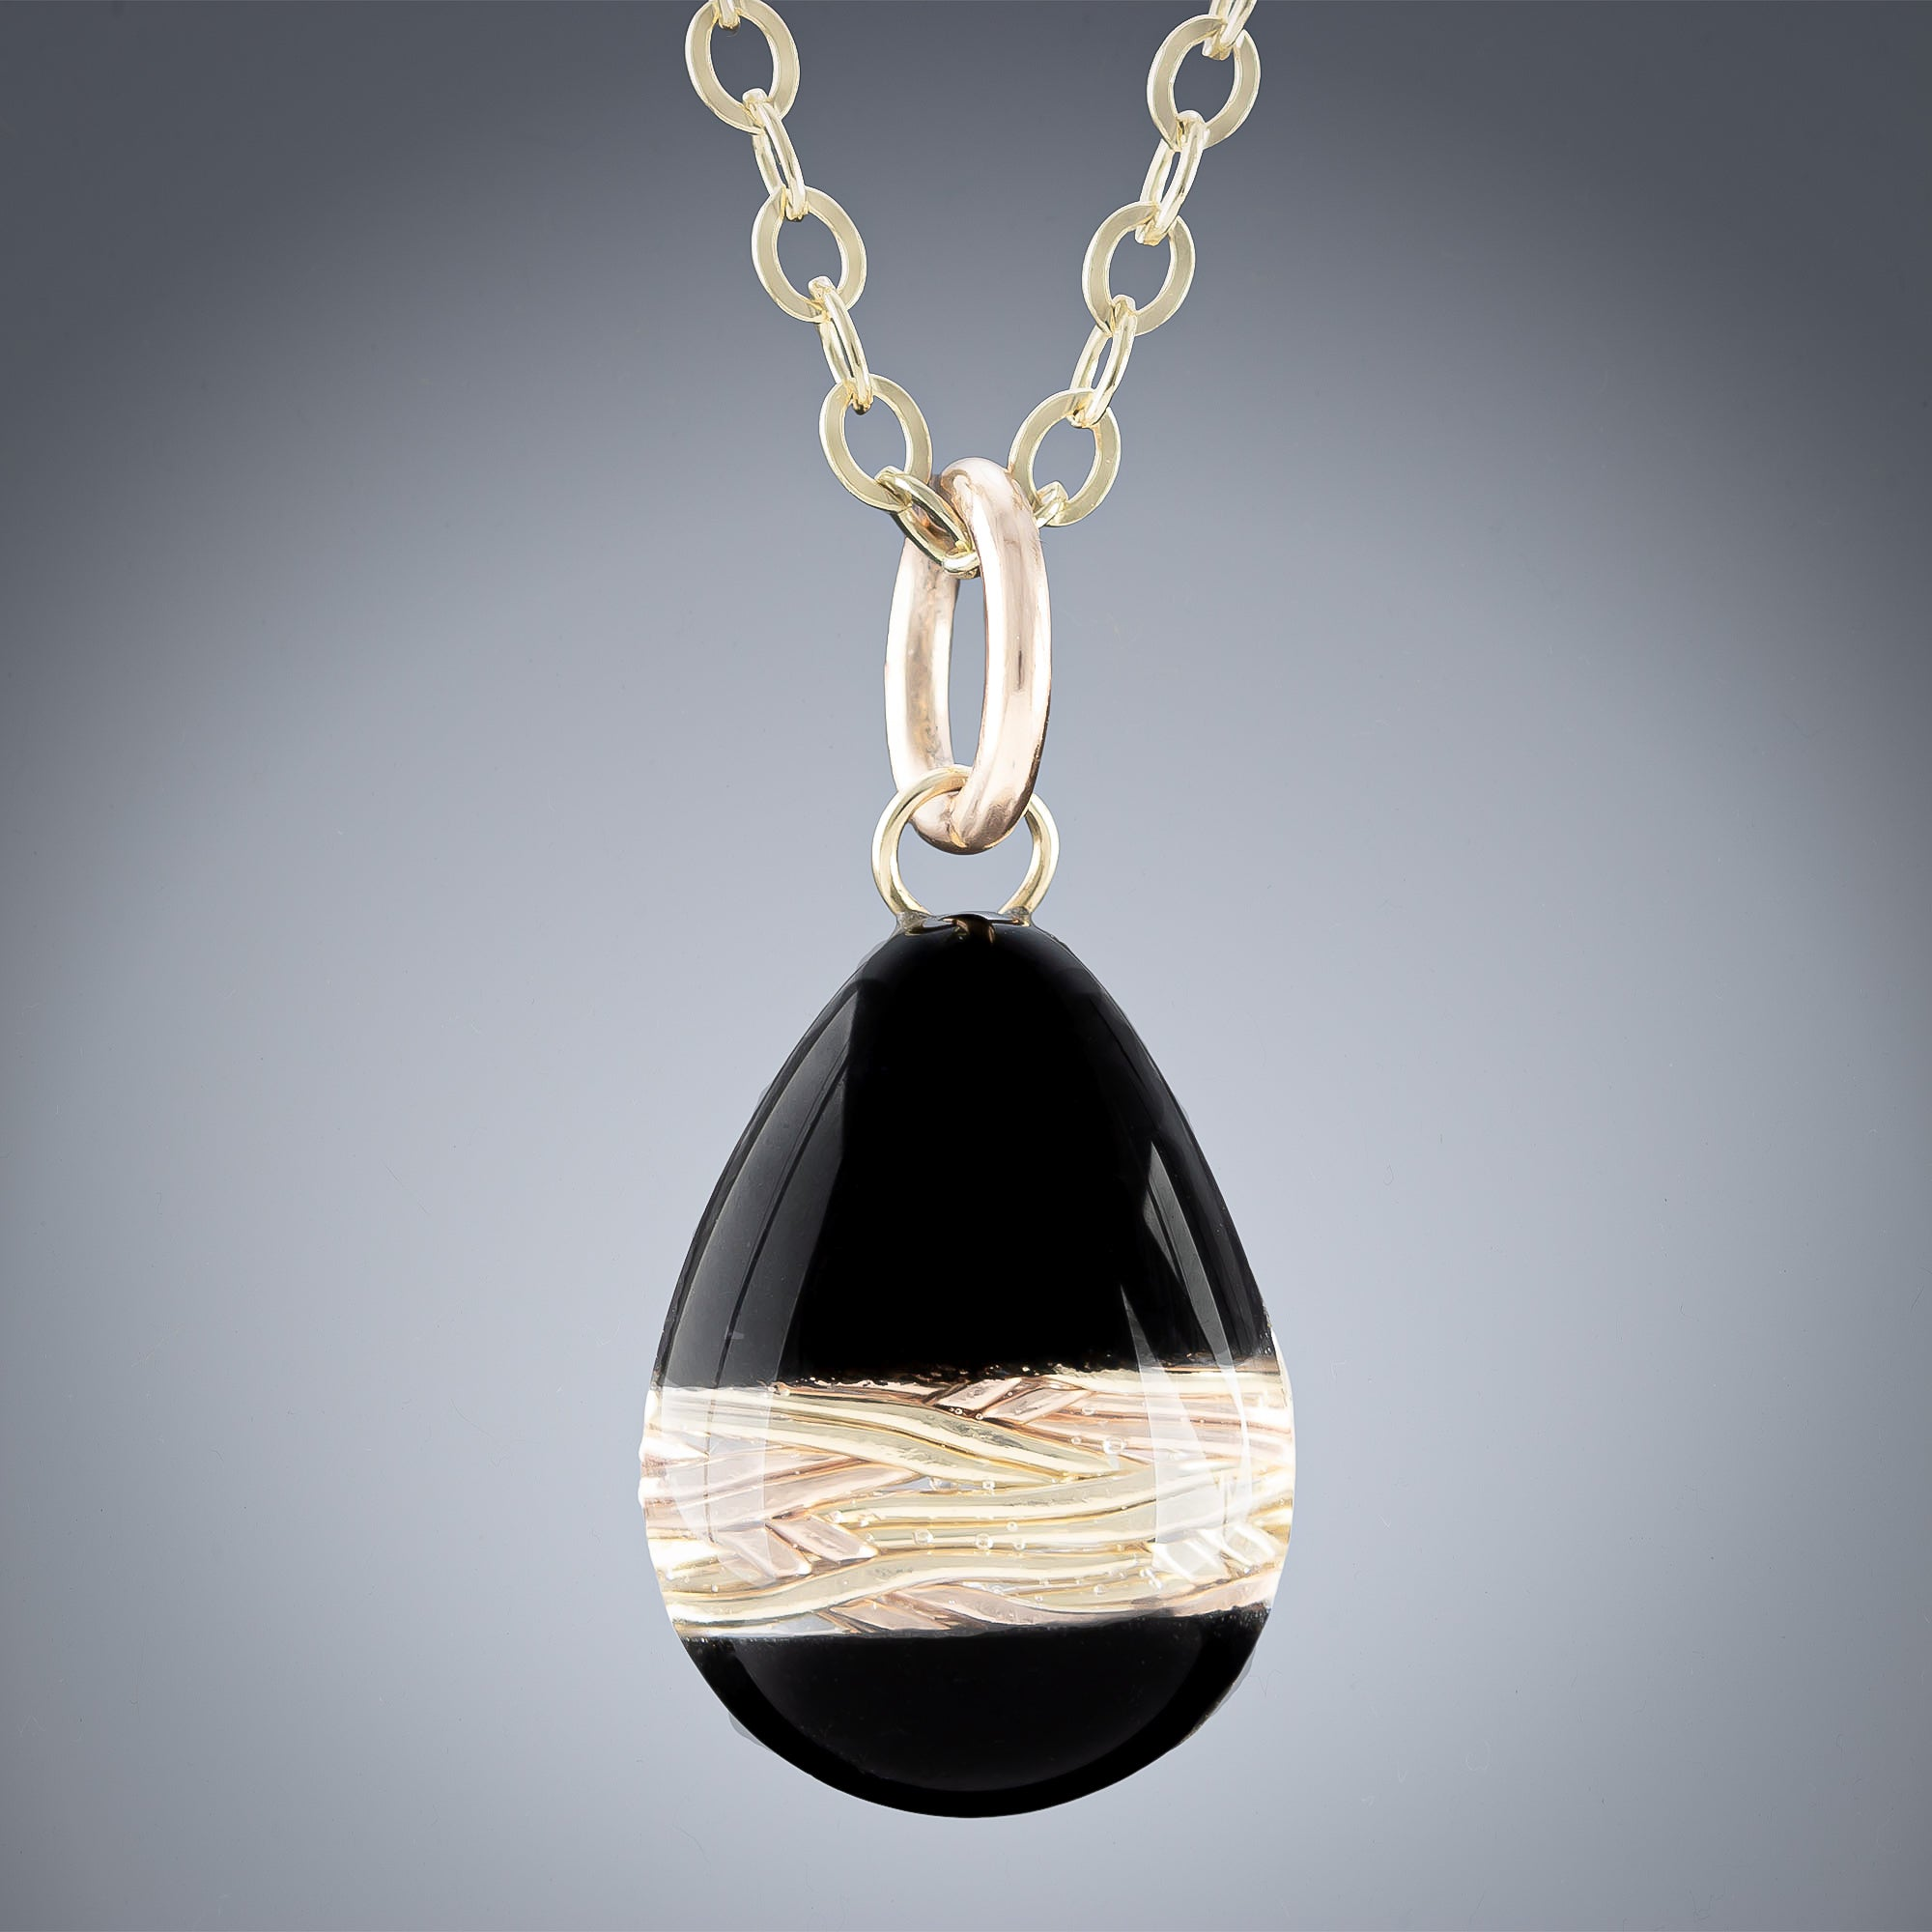 Small Woven Depths and Black Enamel Teardrop Pendant in Gold